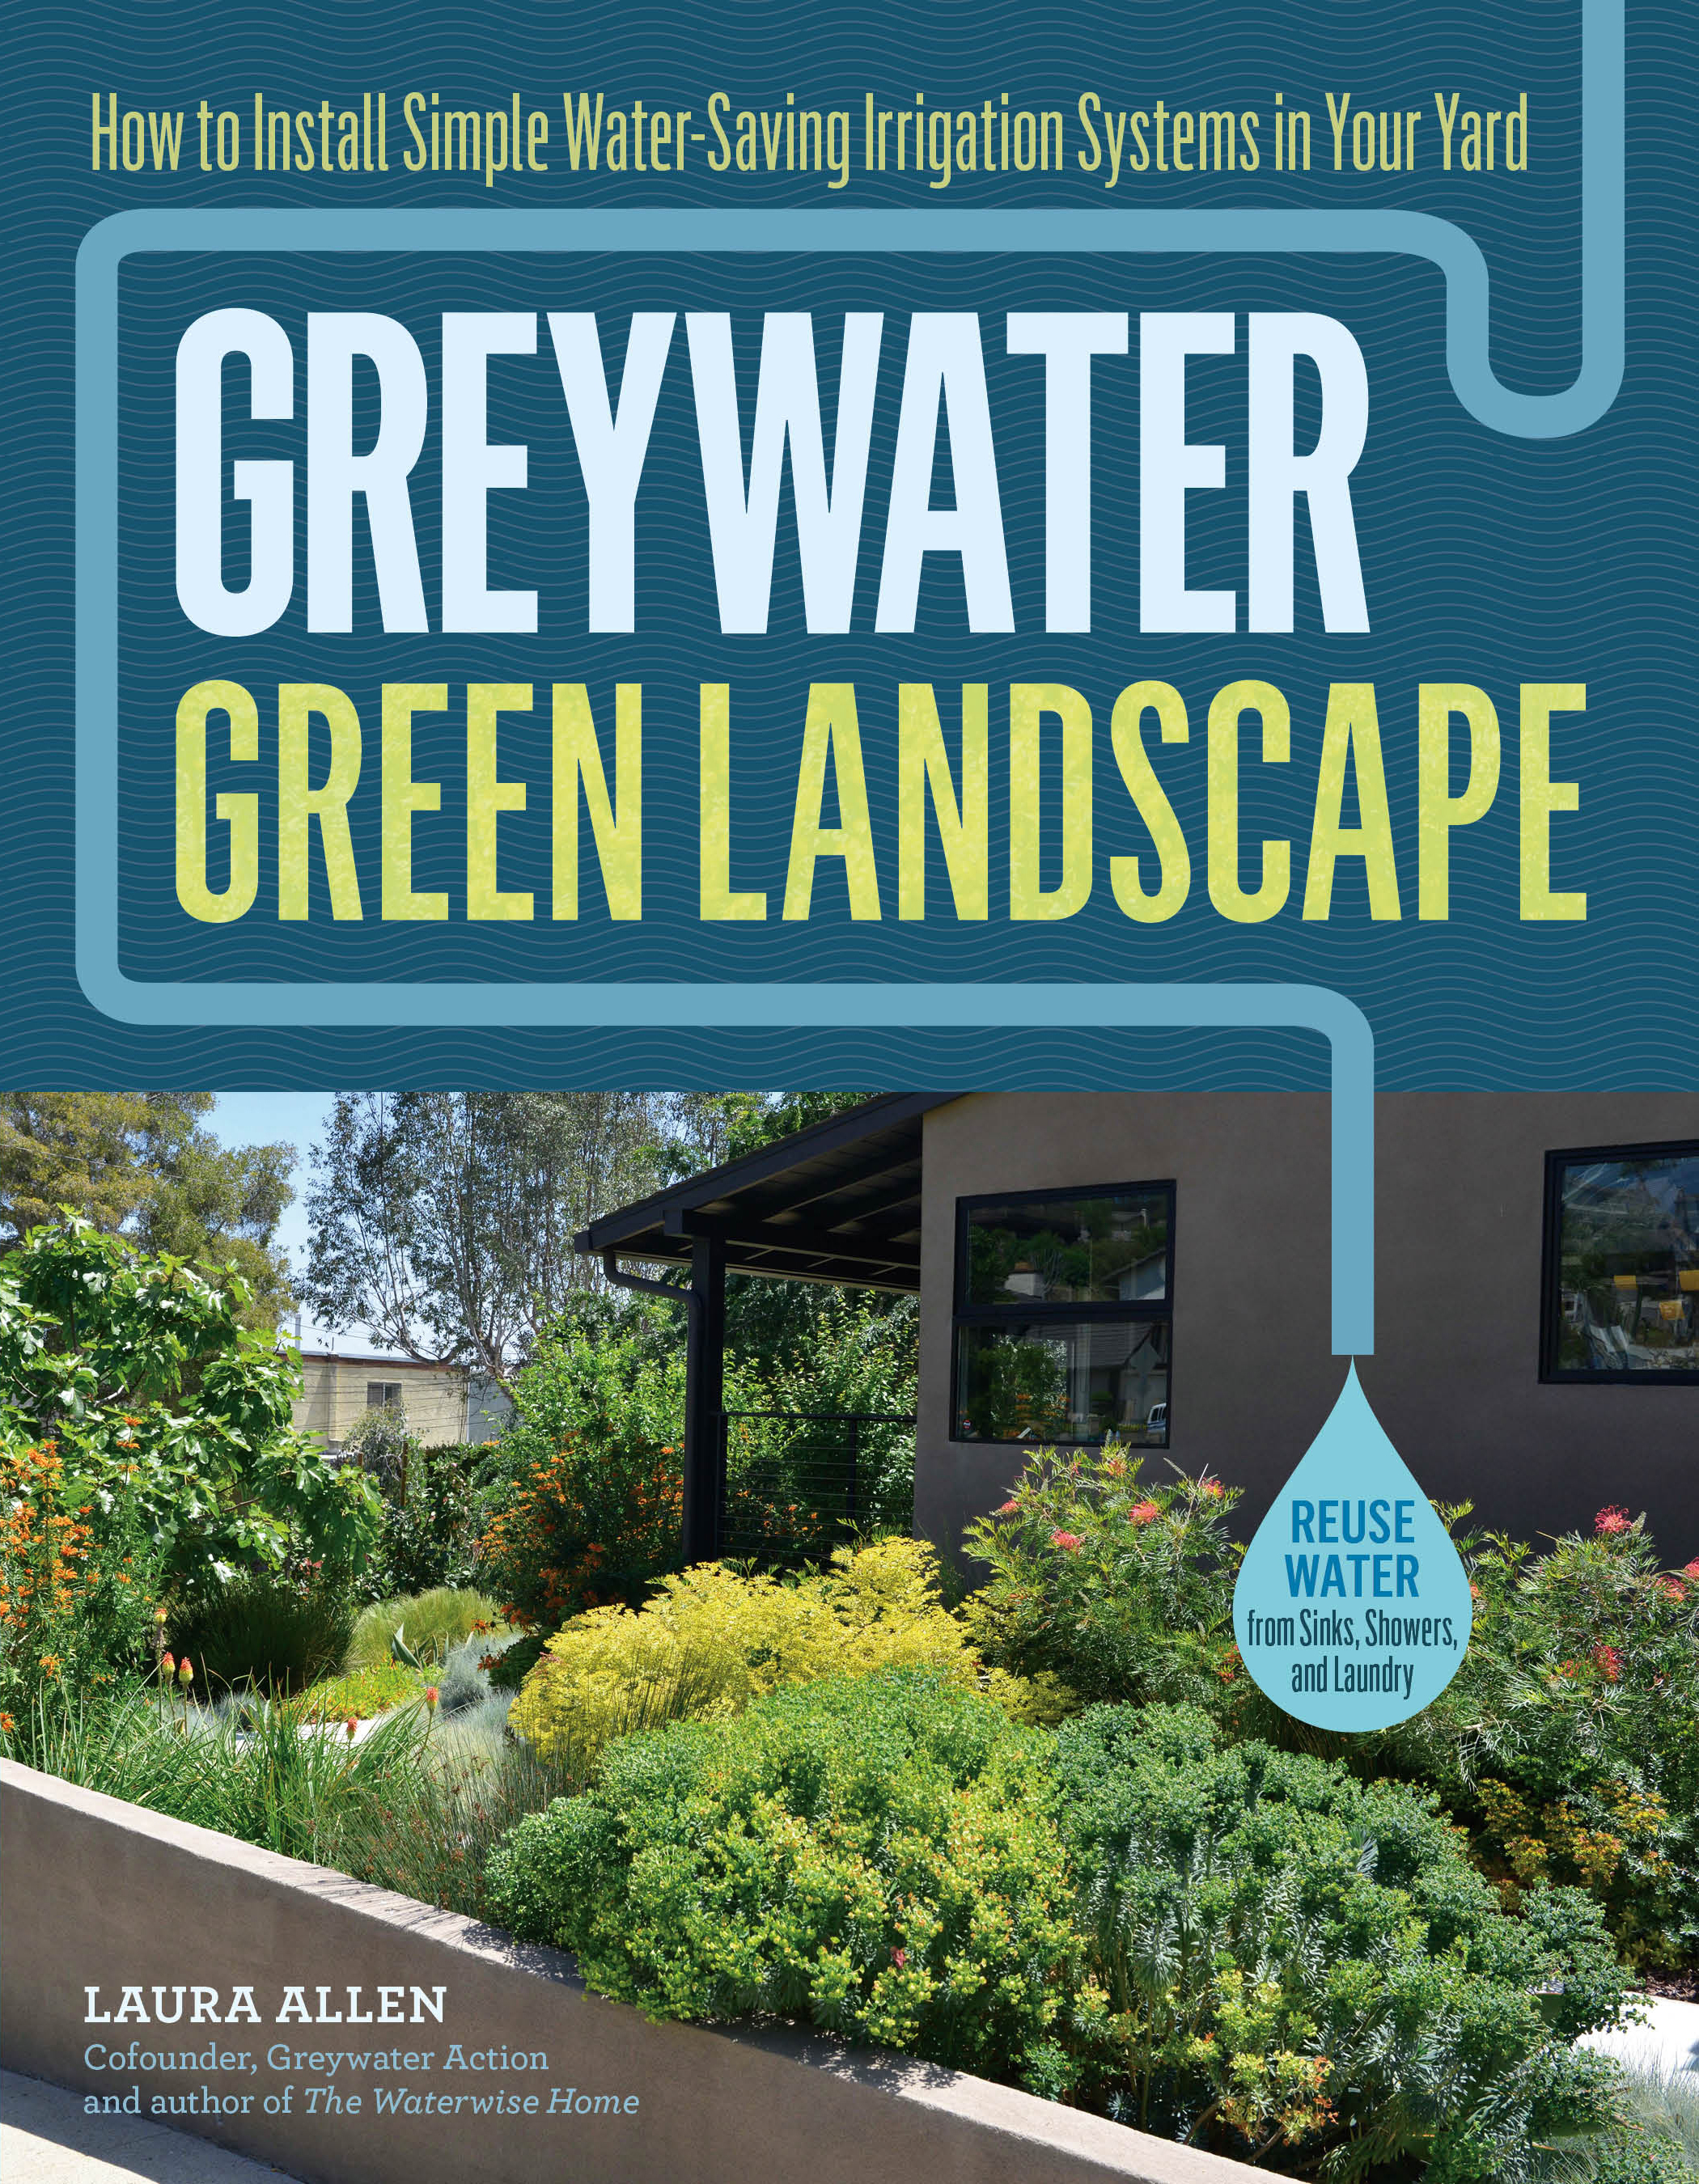 Greywater, Green Landscape How to Install Simple Water-Saving Irrigation Systems in Your Yard